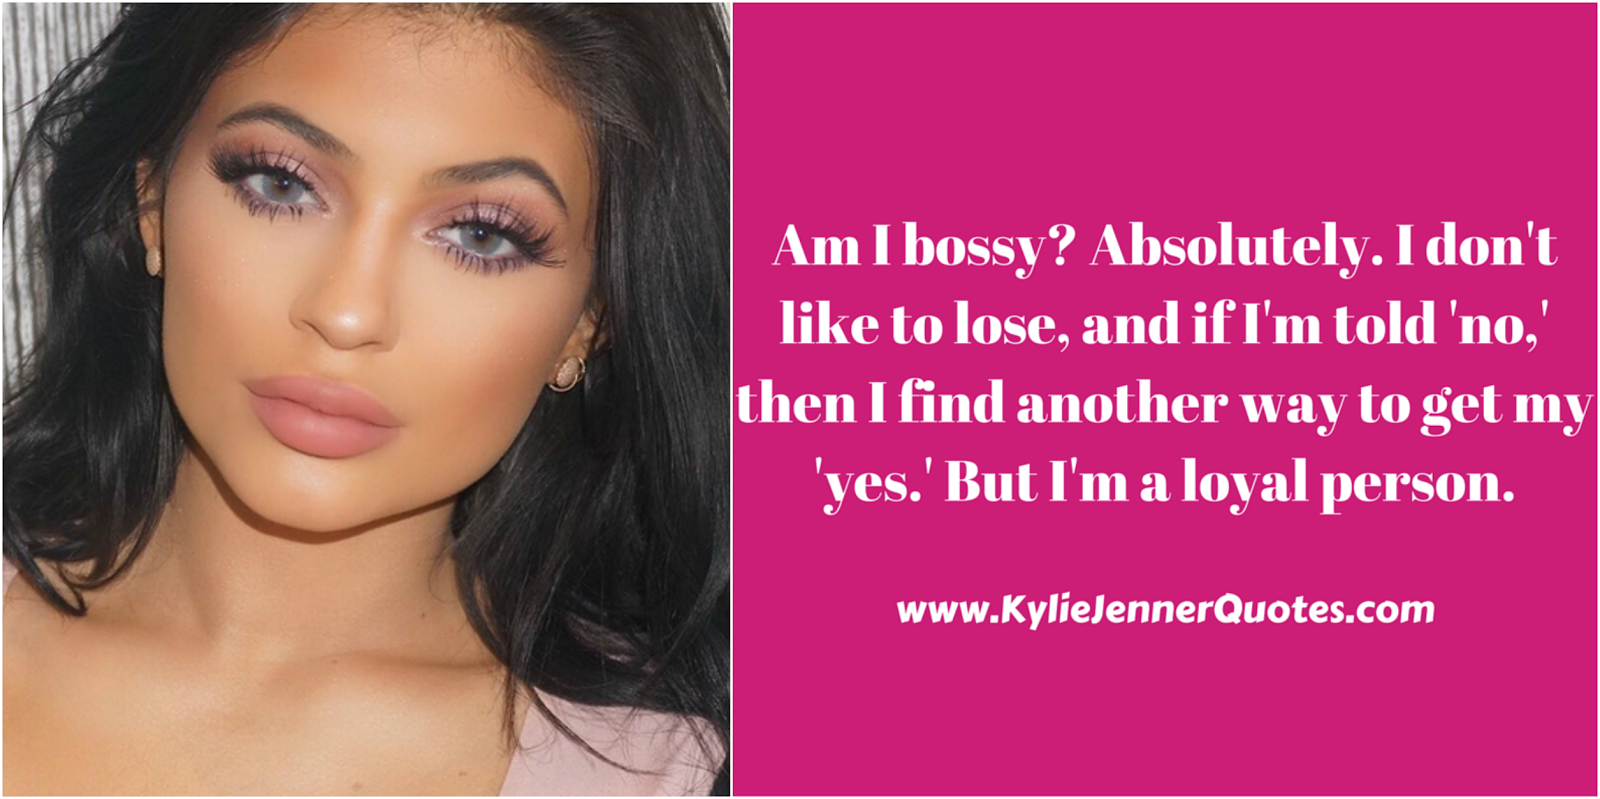 8cb4709e1bf32 Kylie Jenner Quotes   Kylie Jenner Boss Quotes